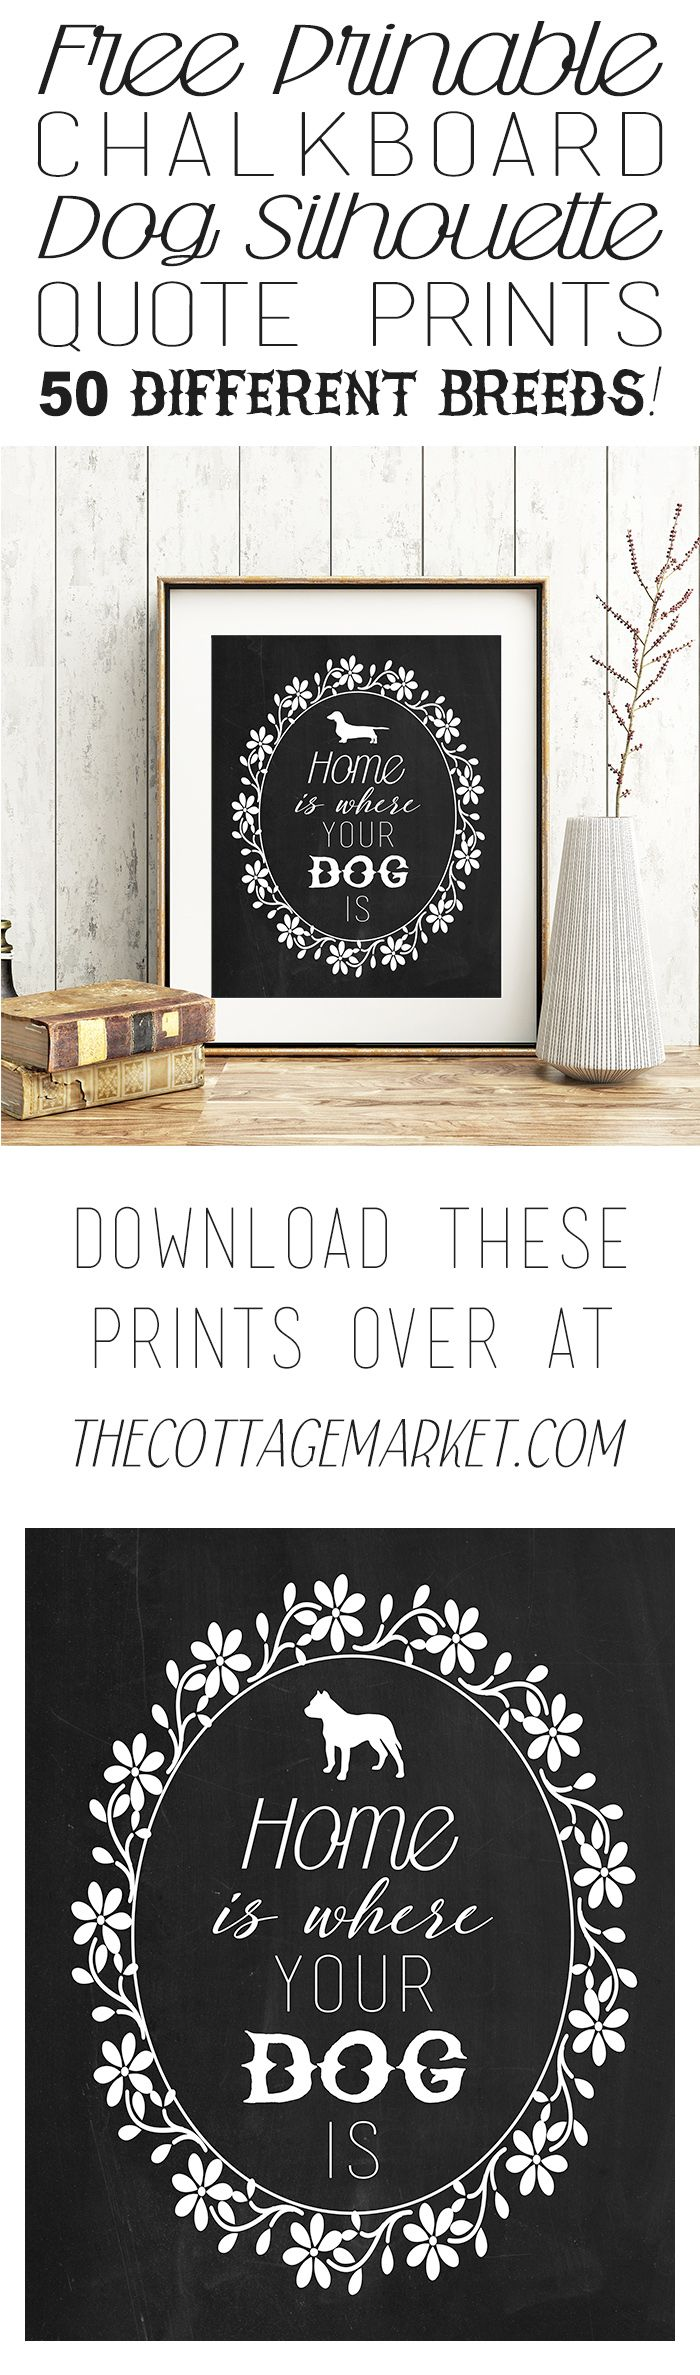 Your choice of 55 dogs+ Free Printable Chalkboard Dog Silhouette Quote Prints - The Cottage Market